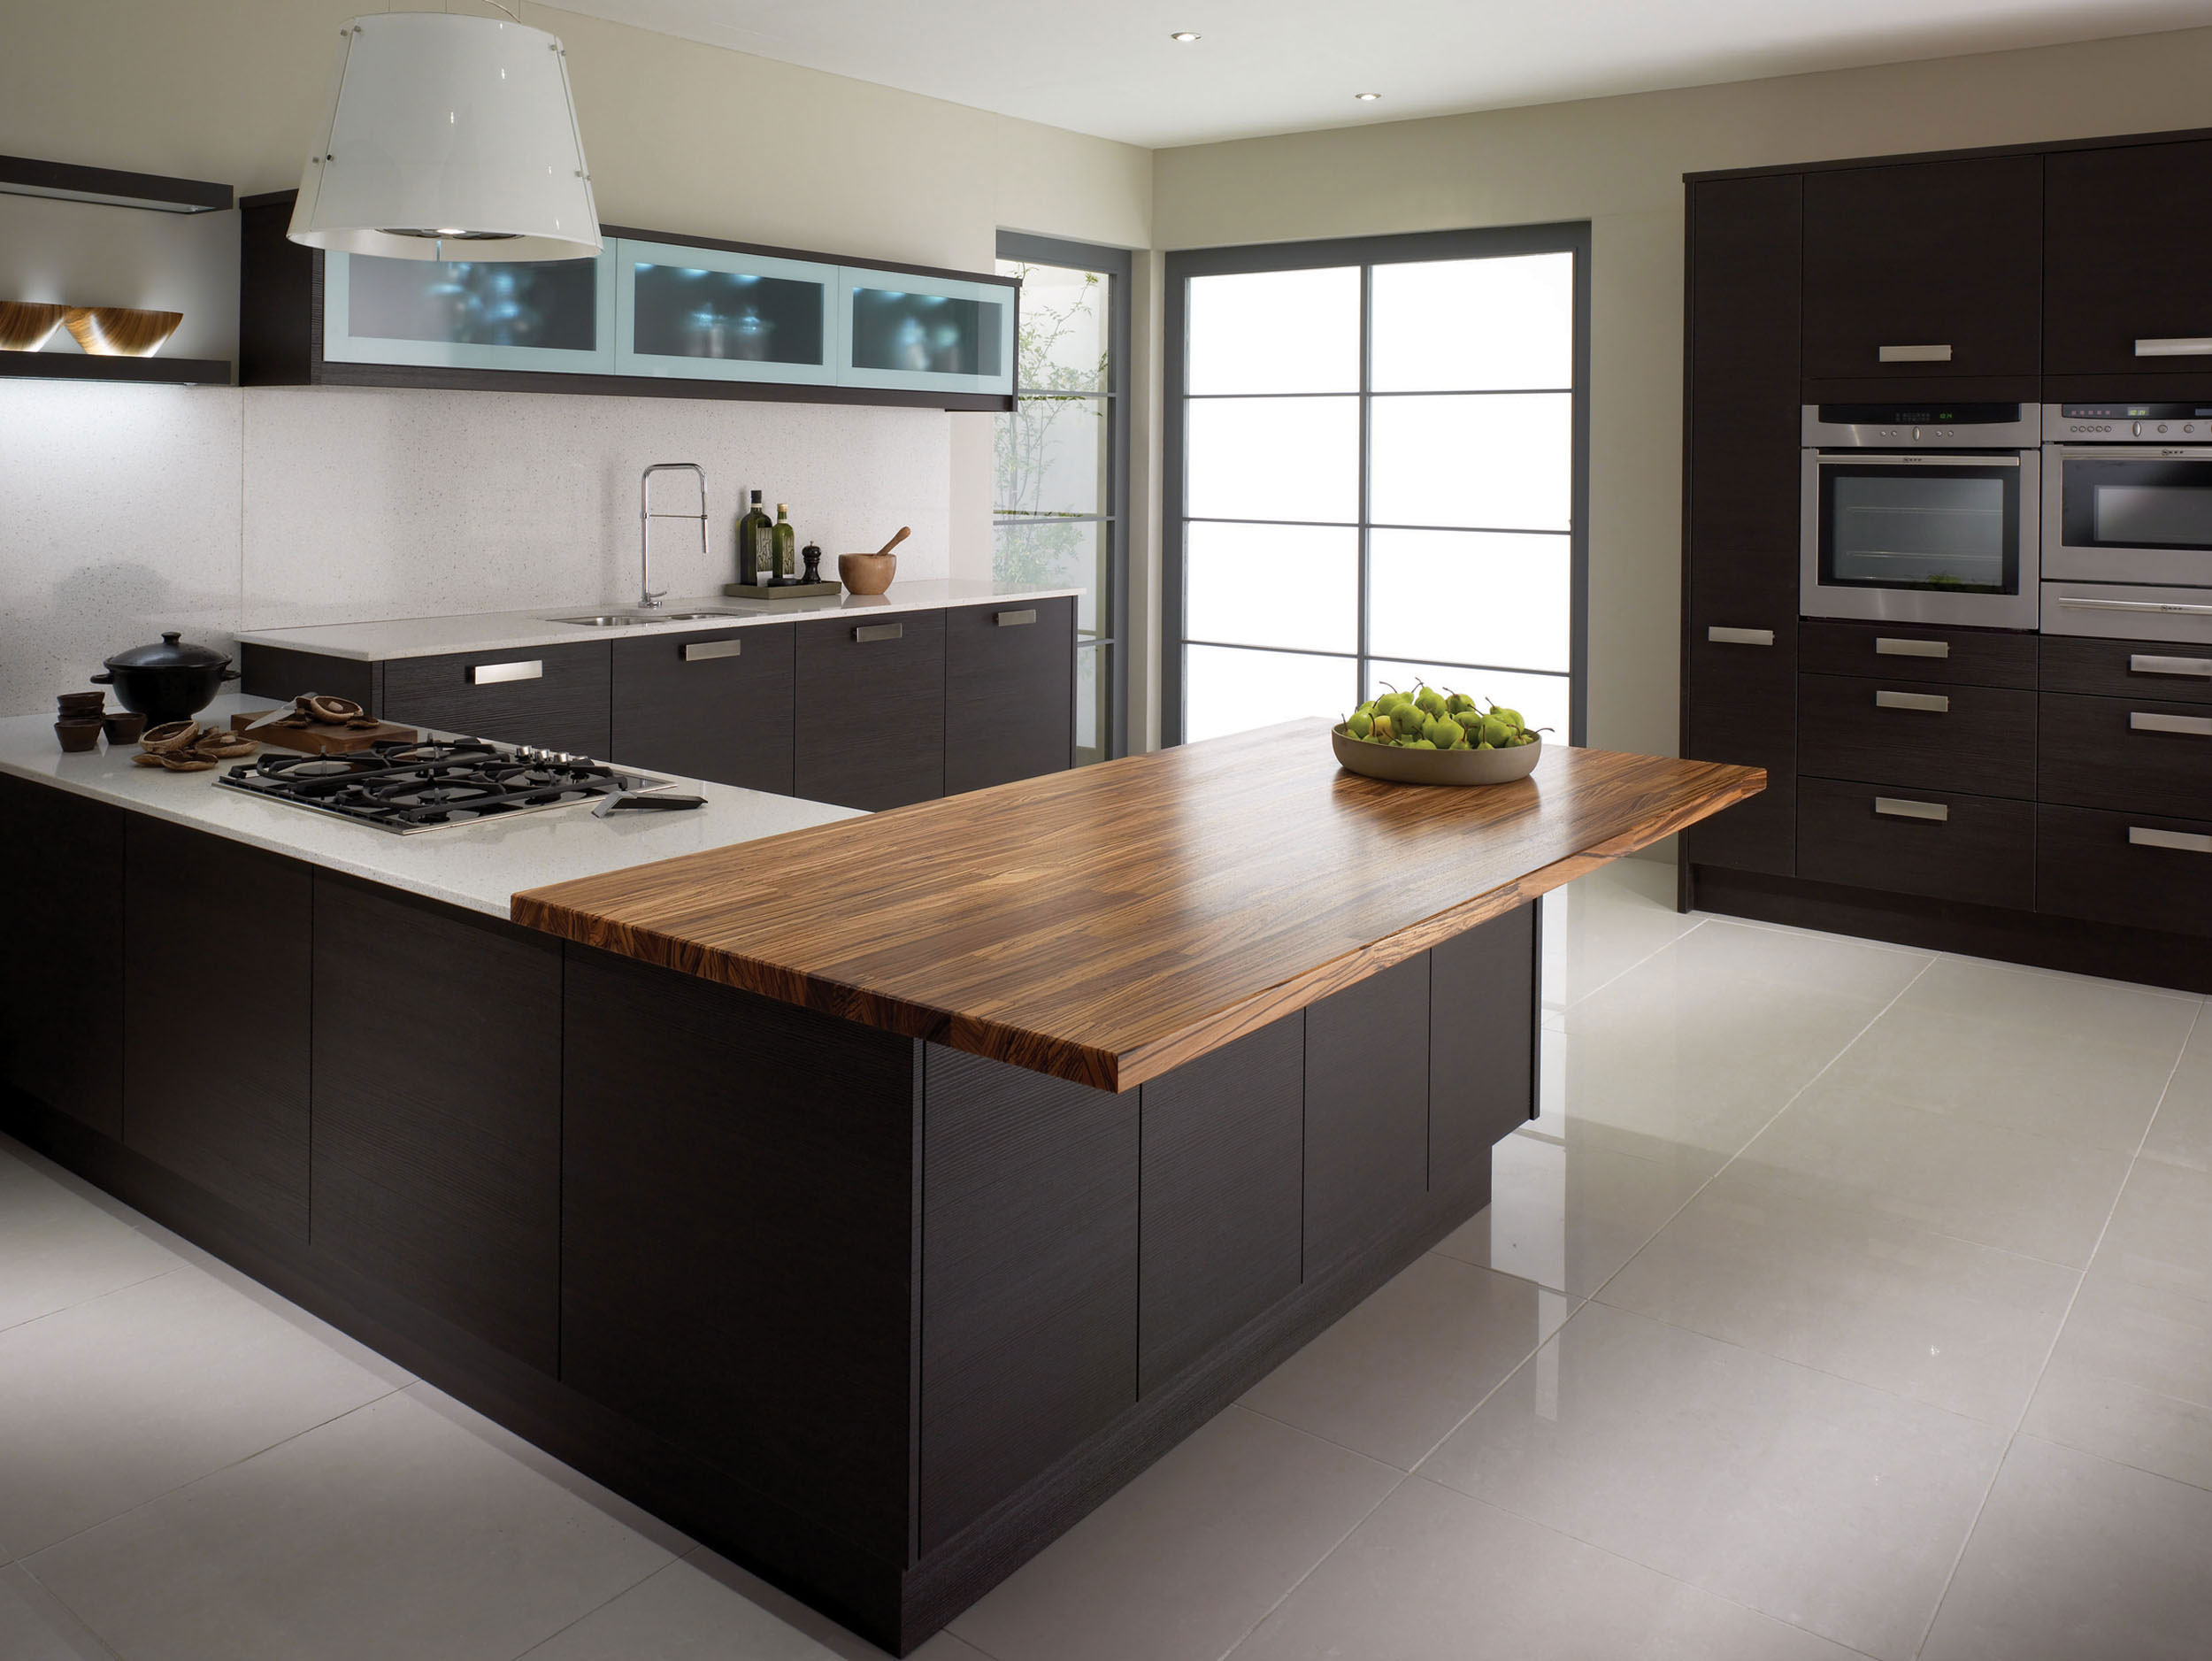 Fenton wenge from eaton kitchen designs wolverhampton for Cuisine wenge